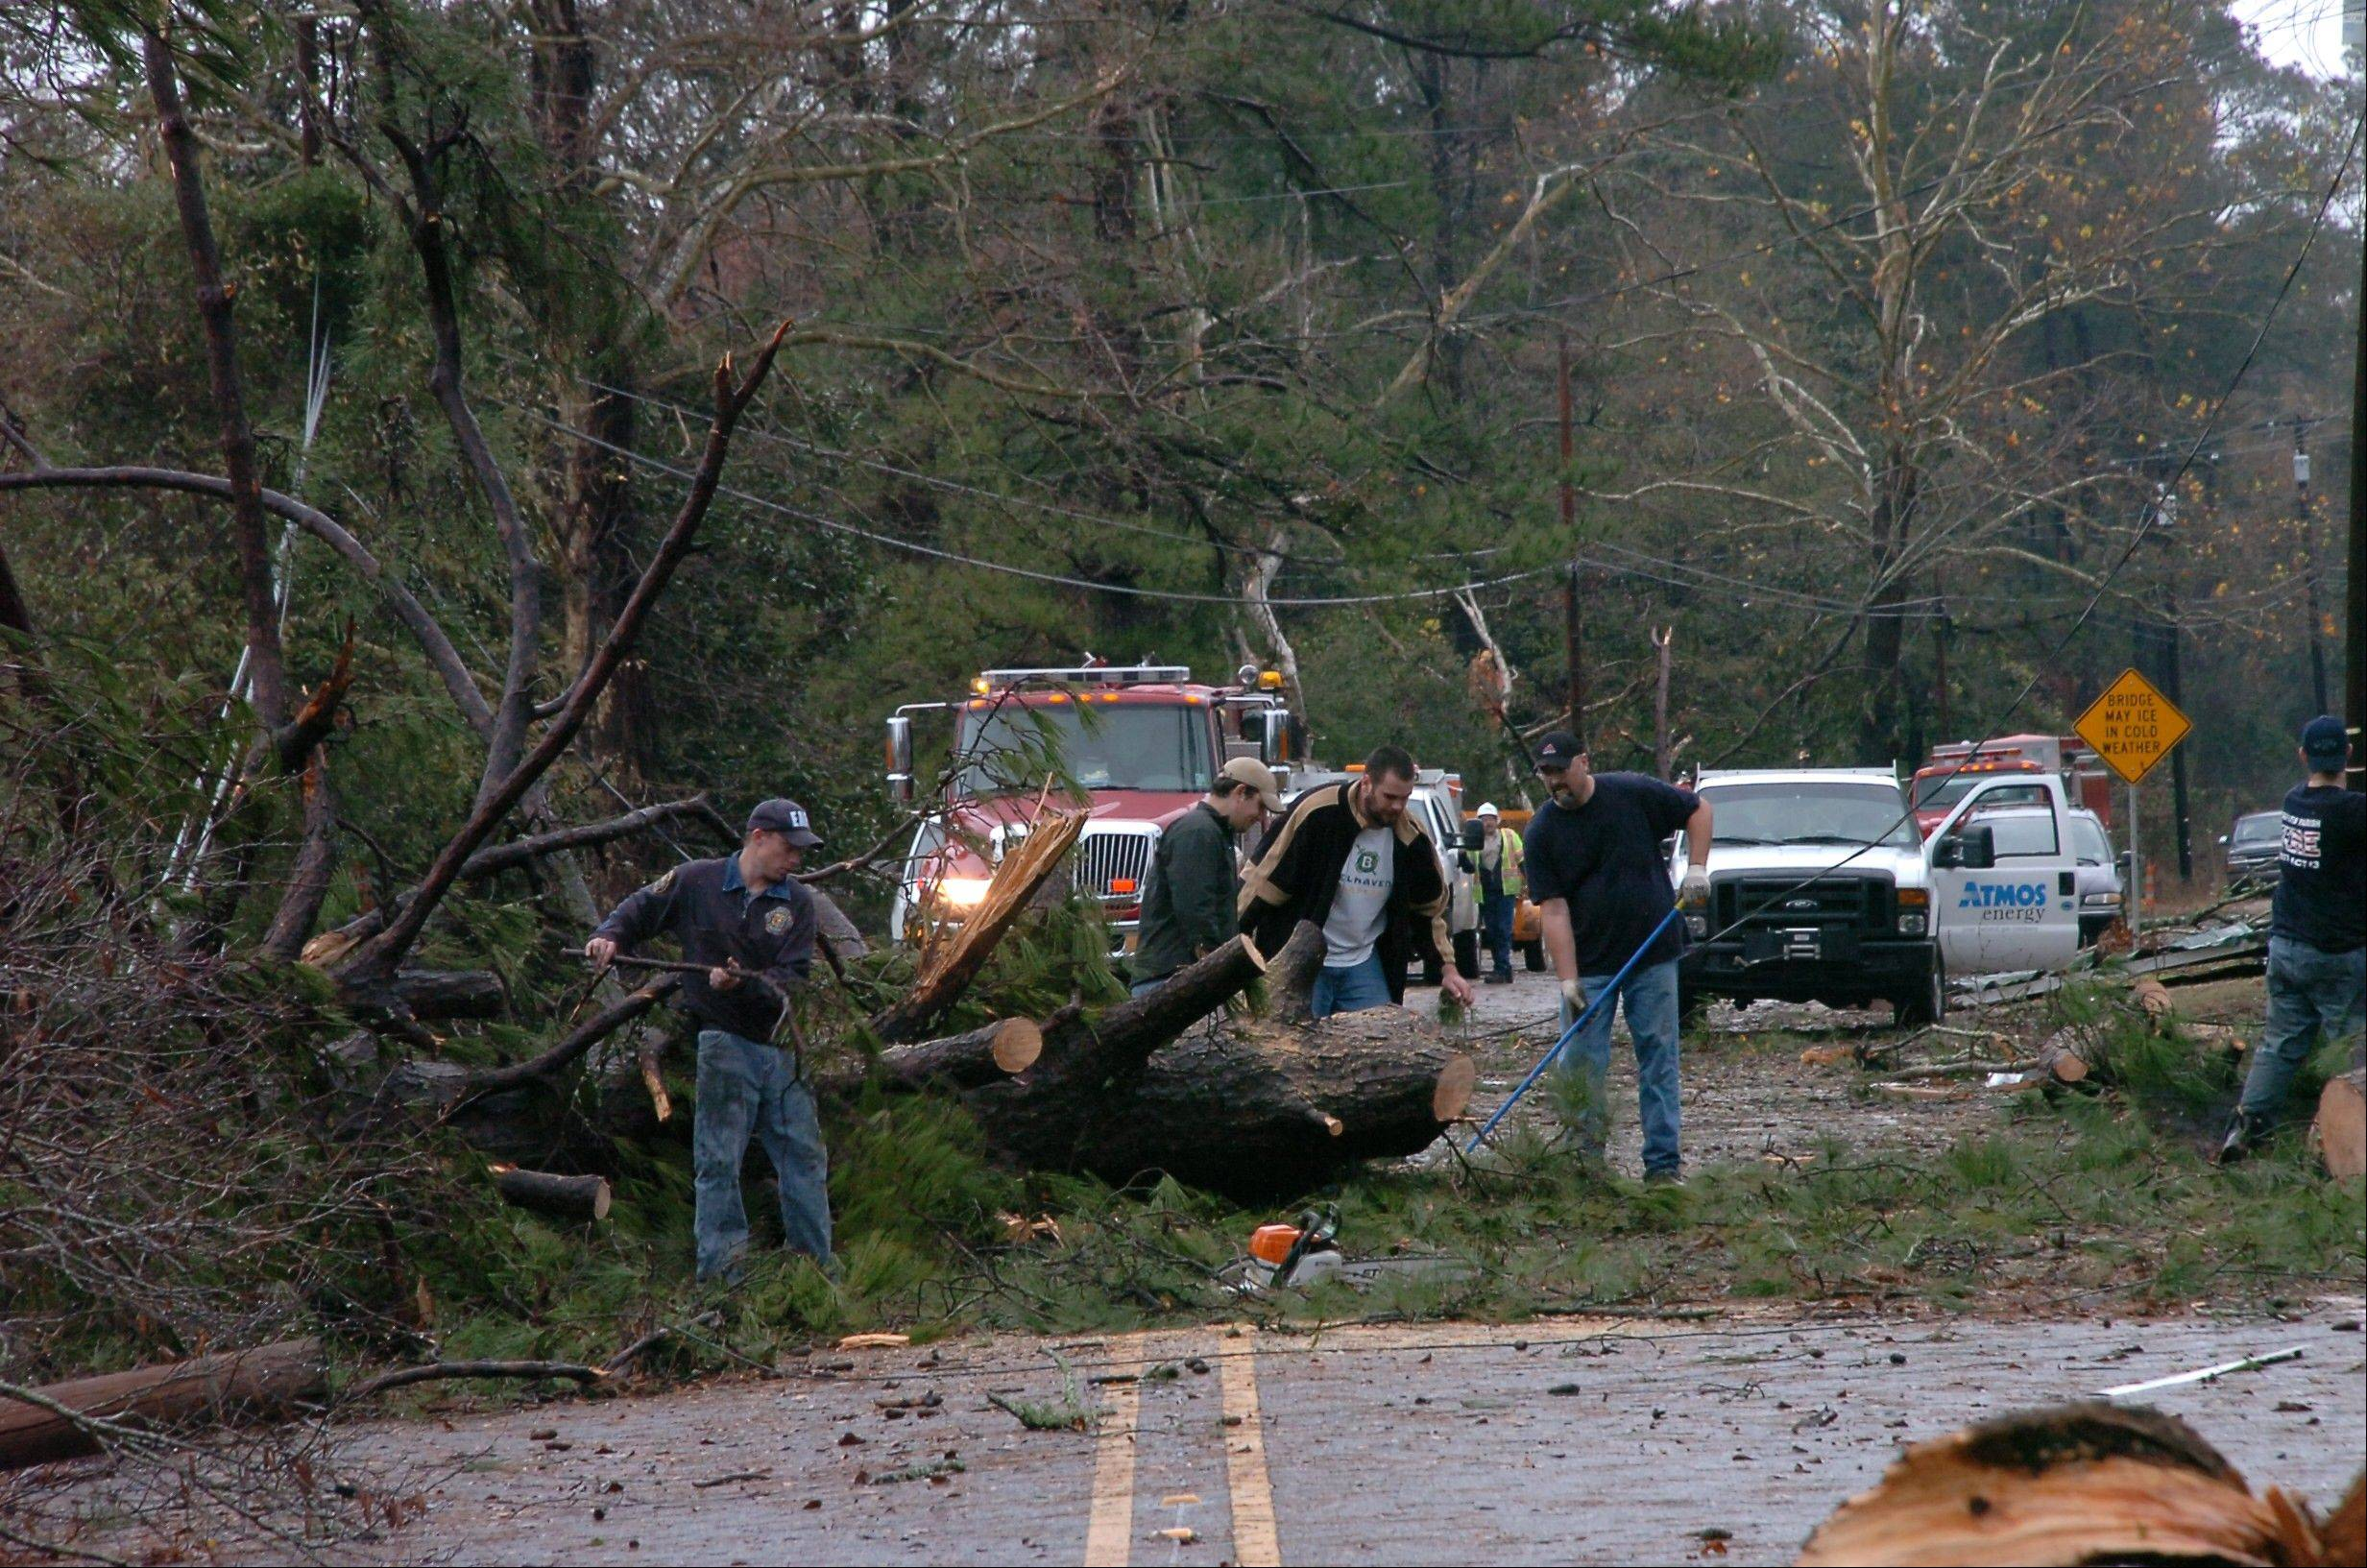 Members of the Alpine Volunteer Fire Department and the VA Fire Department clear debris from U.S. 71 in the Tioga, La. area, after an apparent tornado tore through the area Tuesday, Dec. 25, 2012.